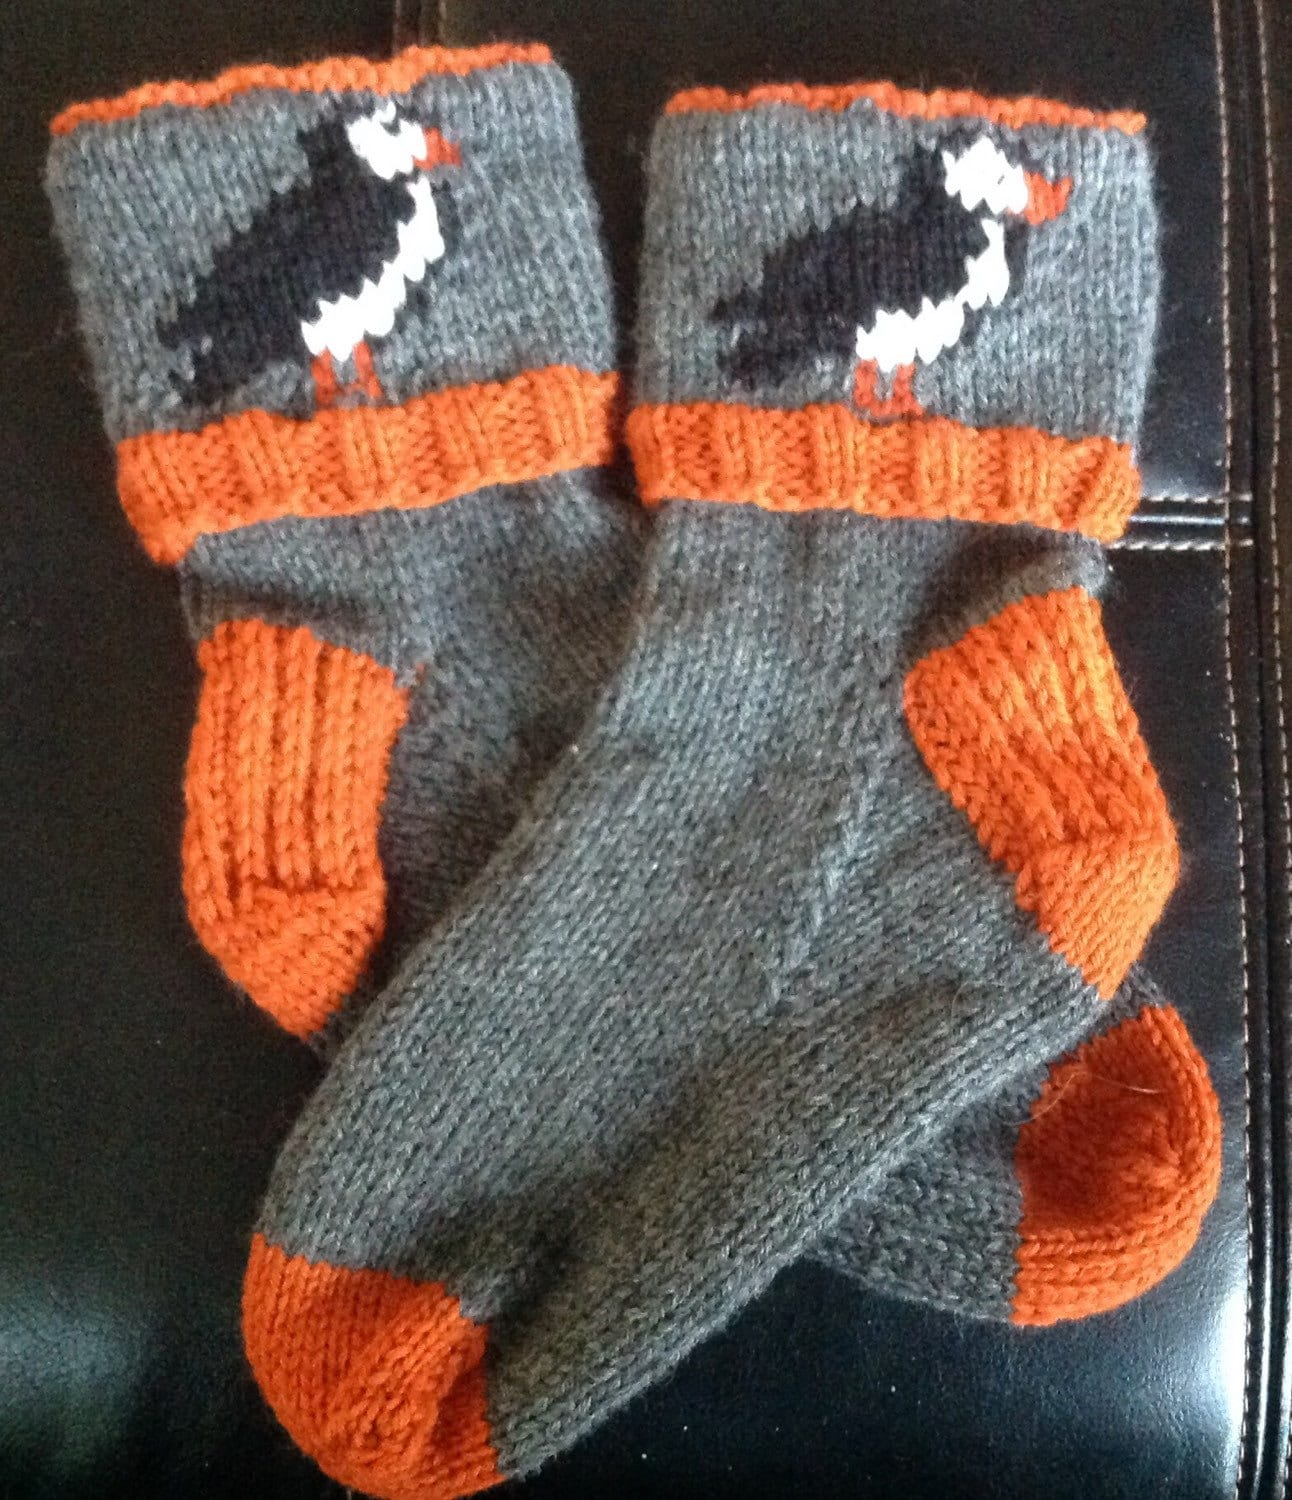 Woolen Socks Knitting Pattern : Newfoundland Puffin Socks